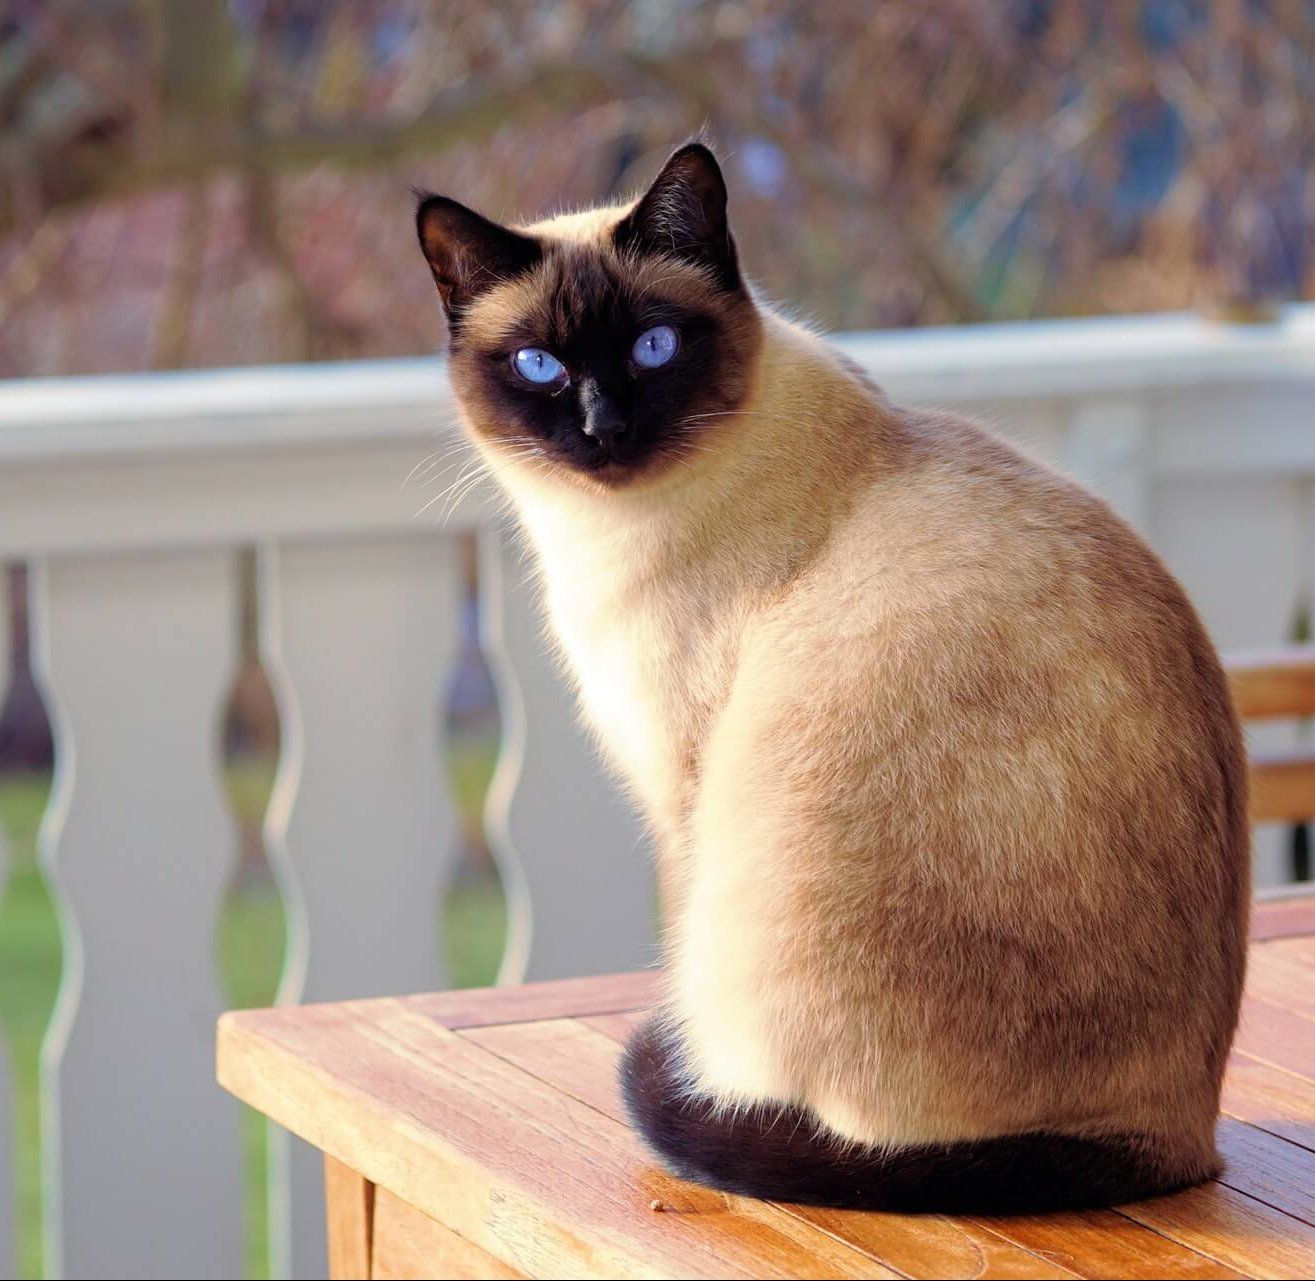 The Siamese cat. If one of these cats owns you, then you